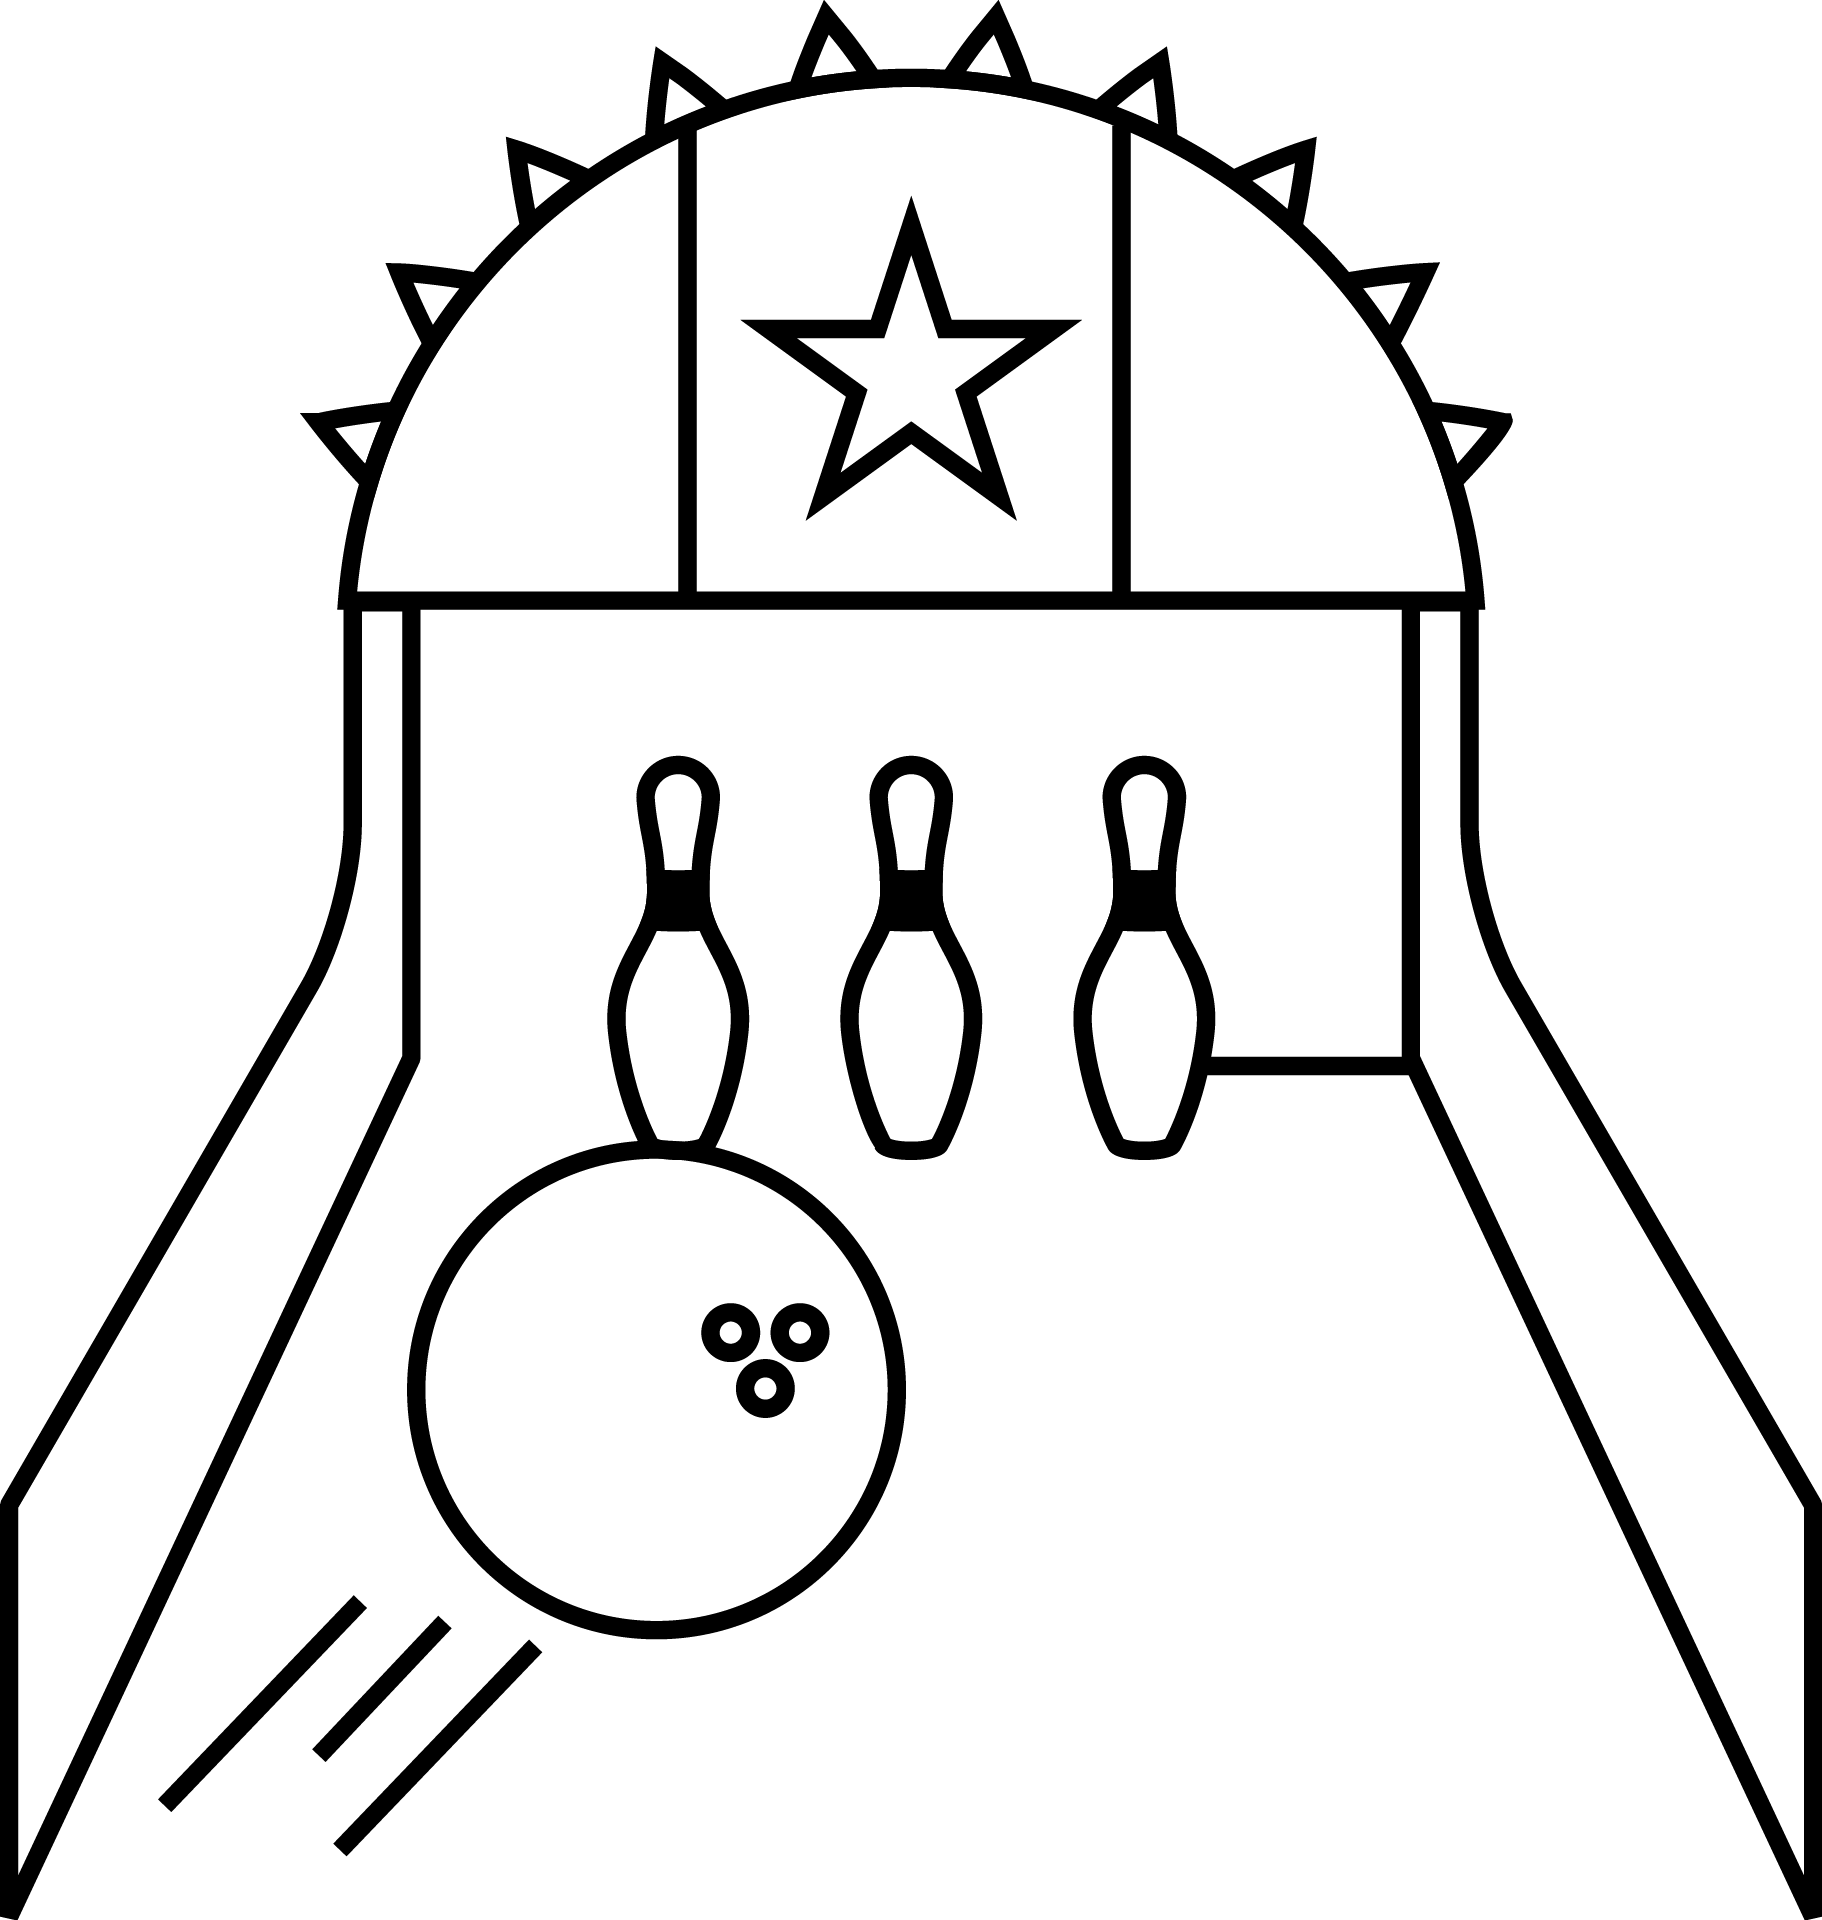 Bowling lane icon